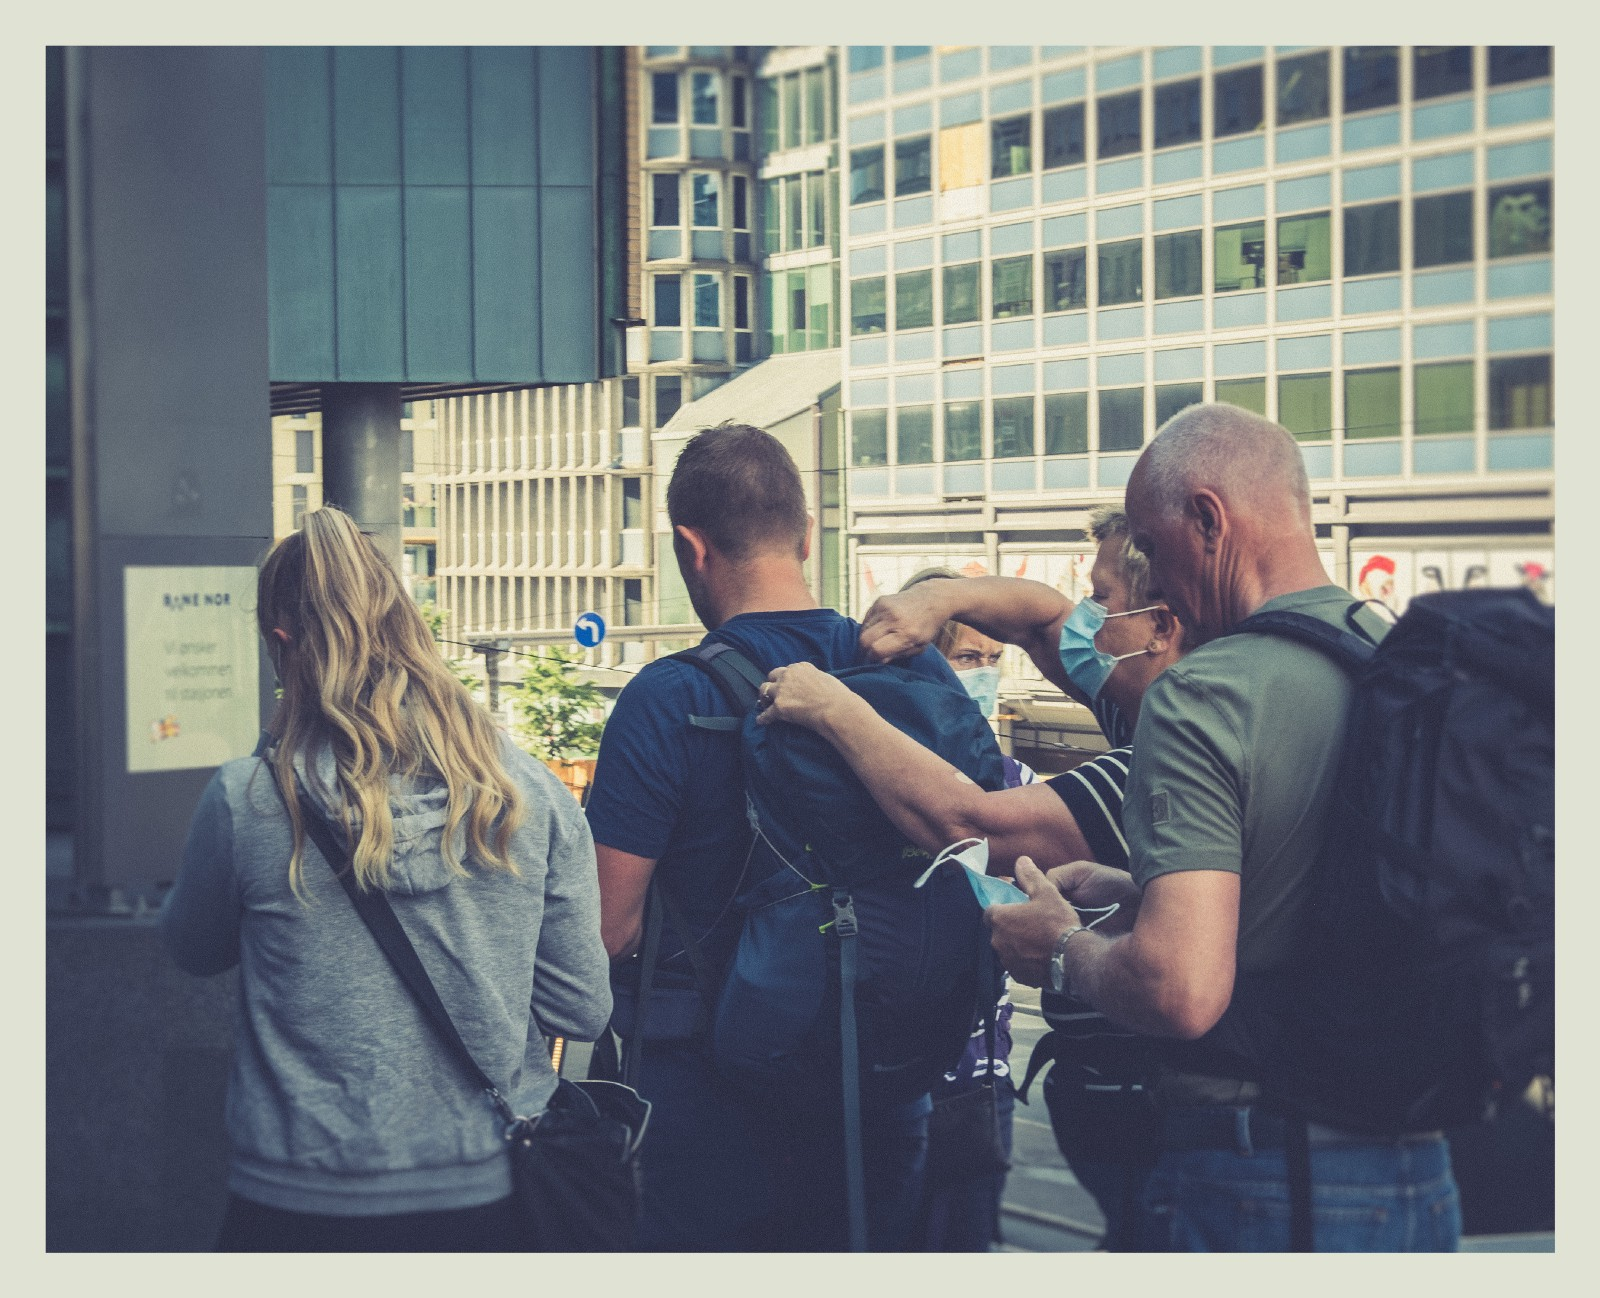 Group of people from behind in Oslo